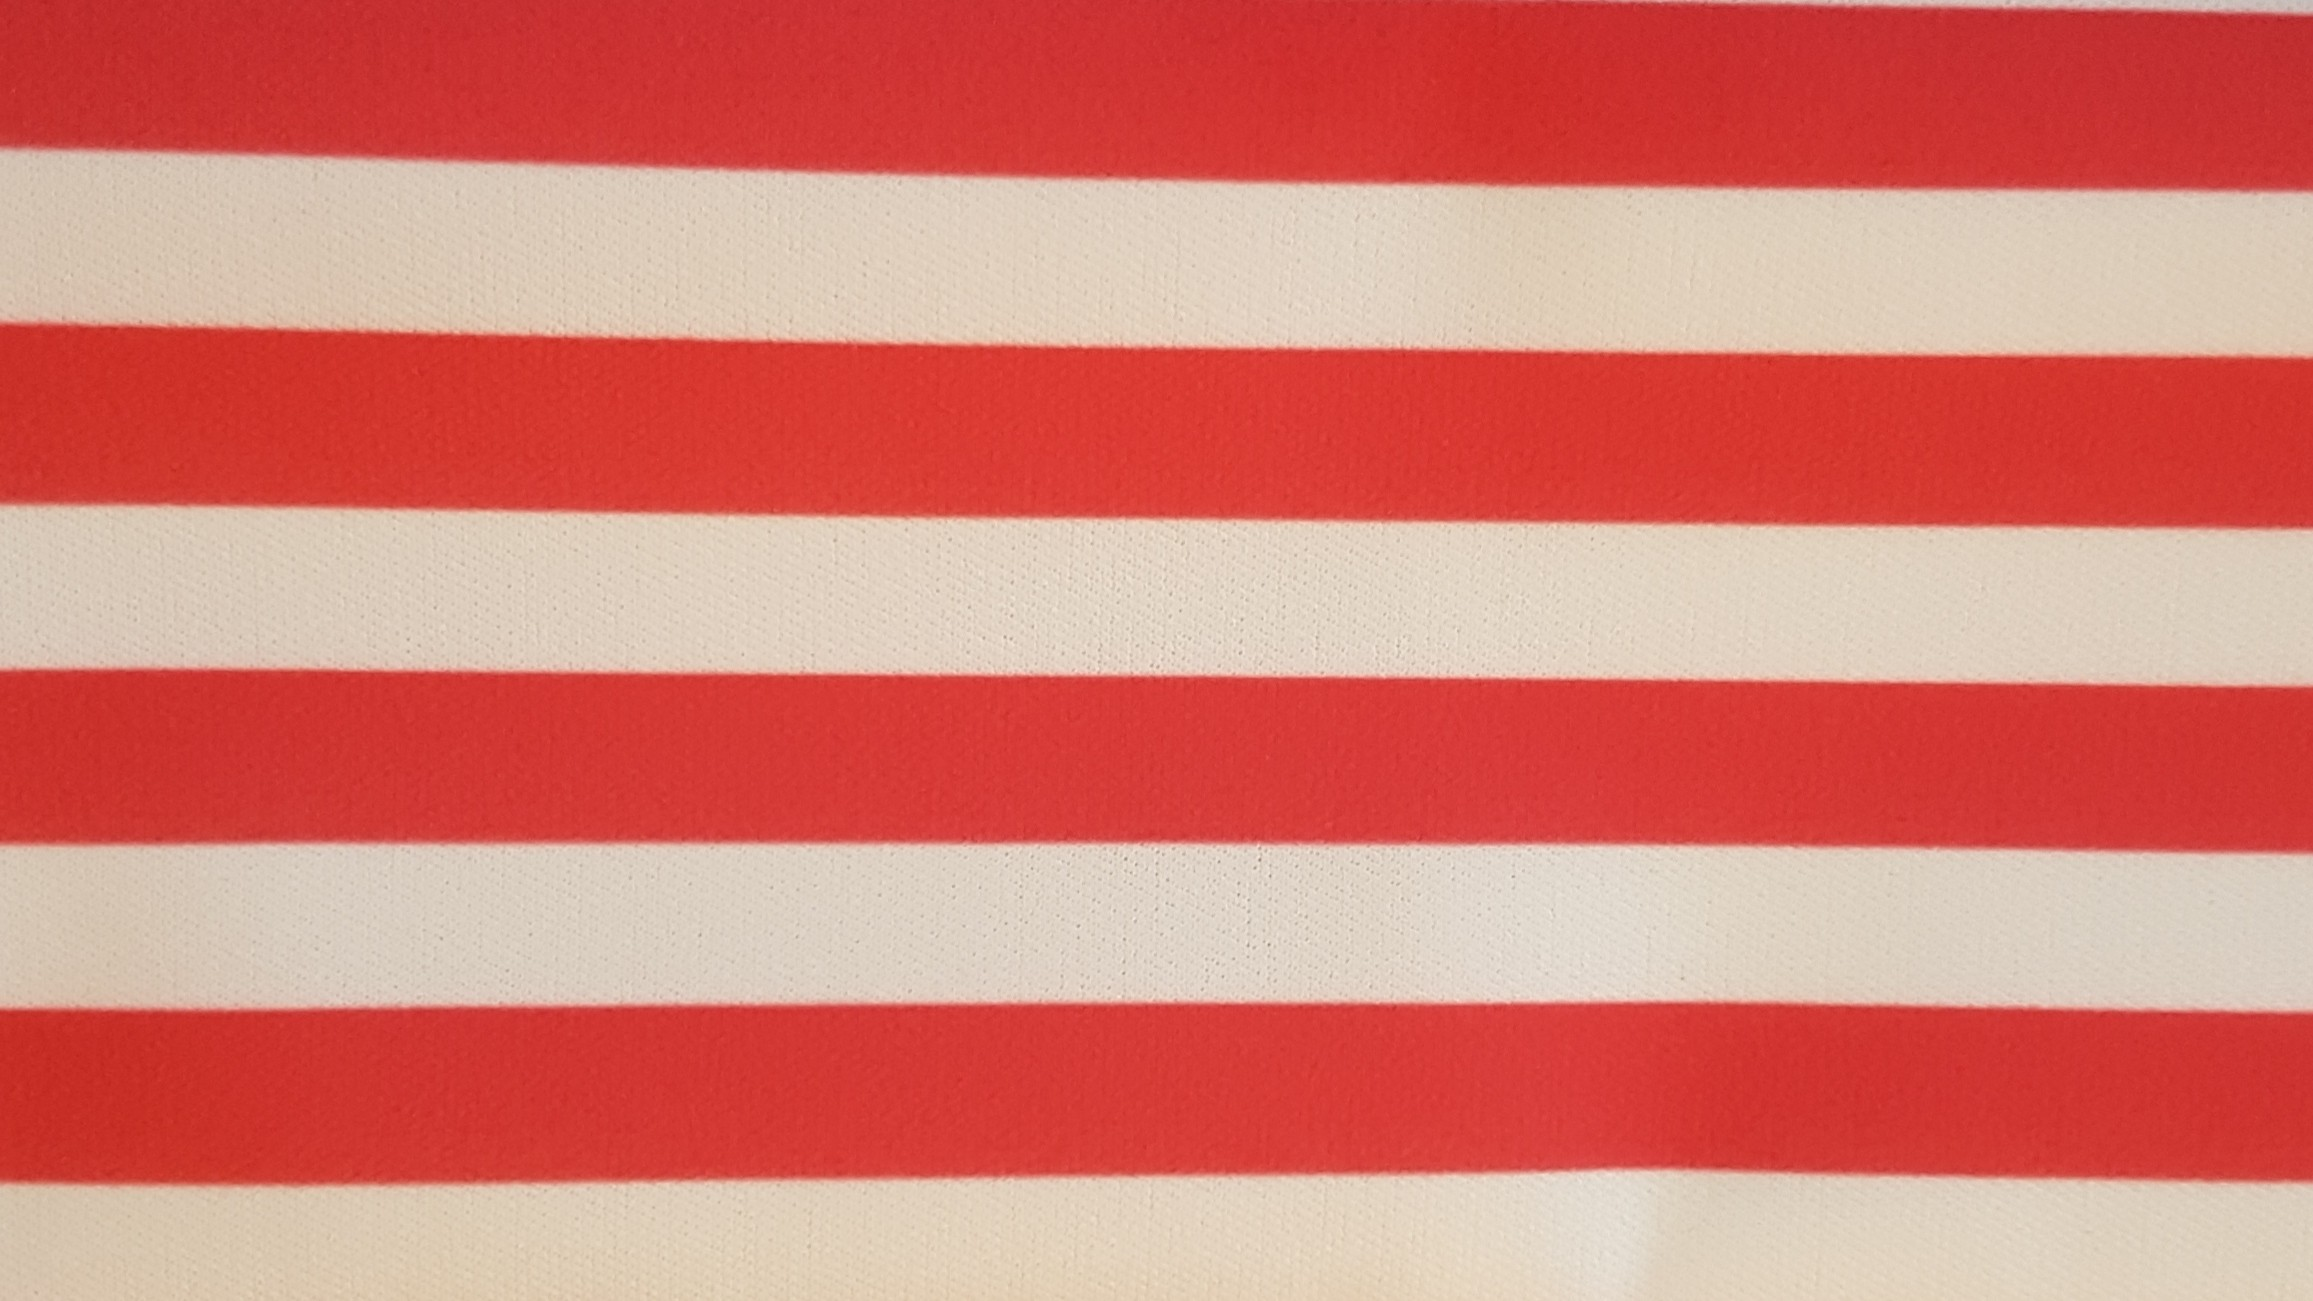 RED & WHITE STRIPES